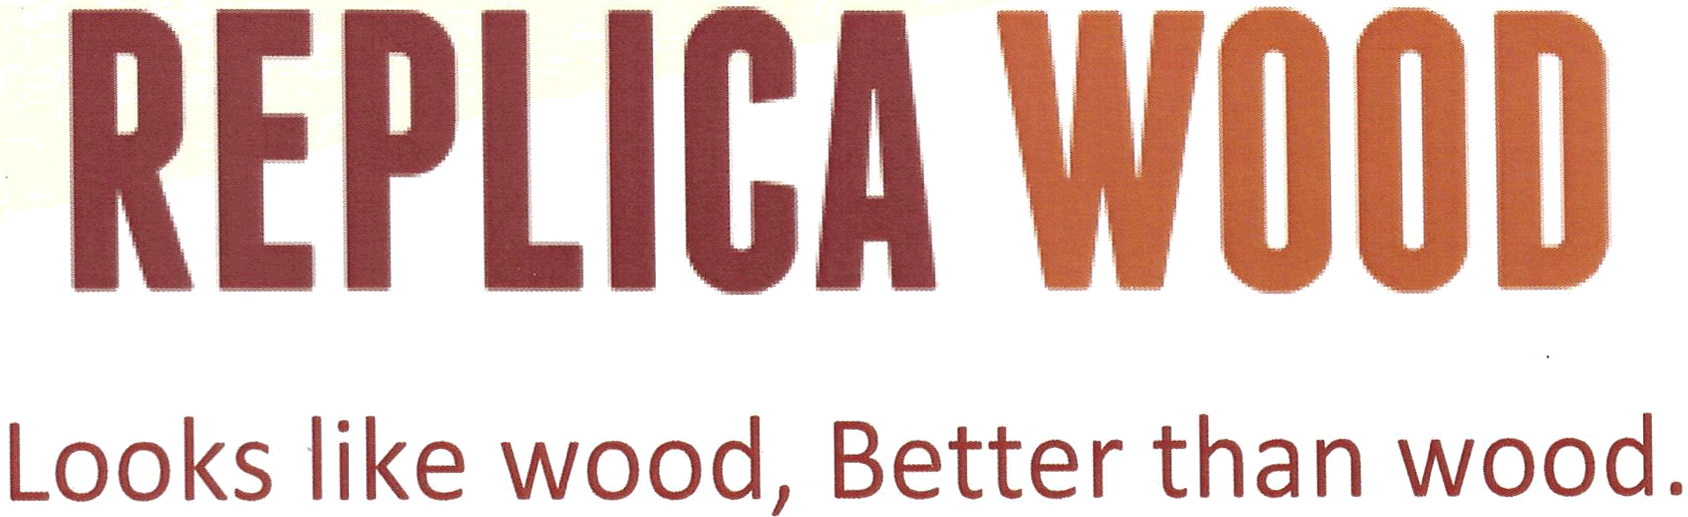 replica wood logo